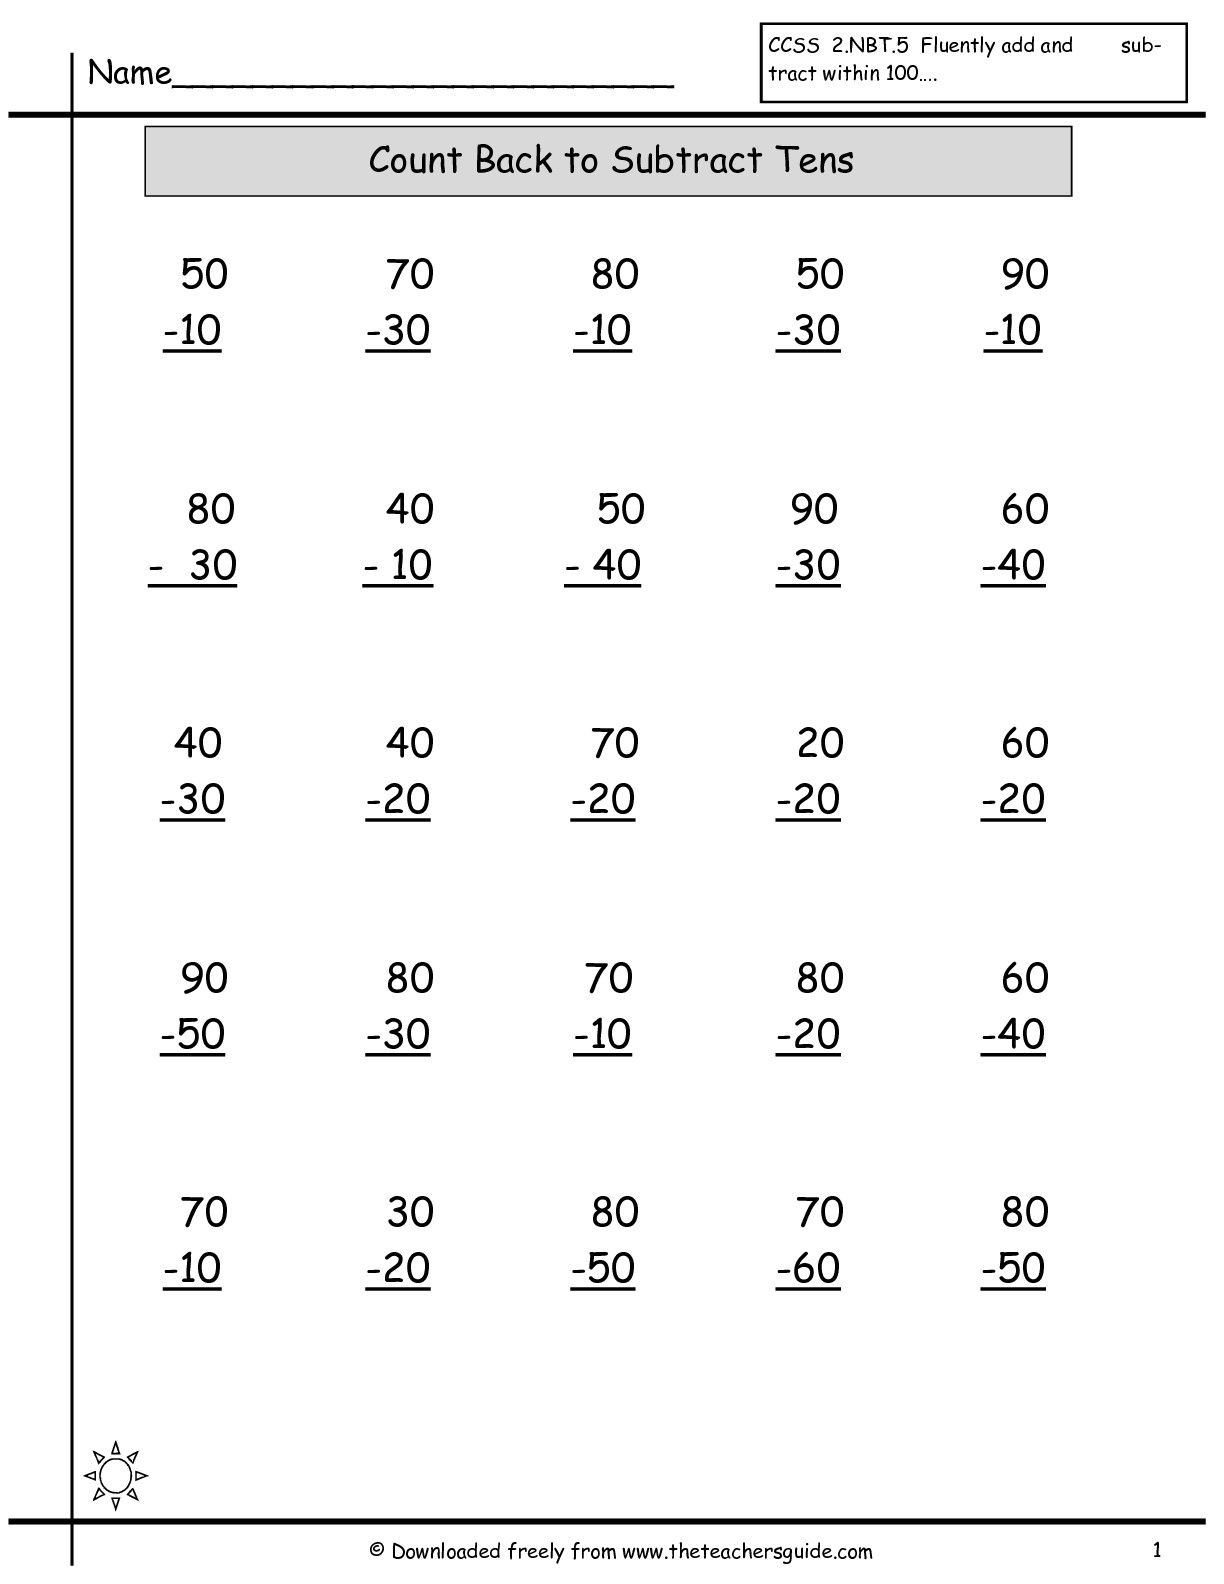 38 Simple Subtraction Worksheets Design Ideas S